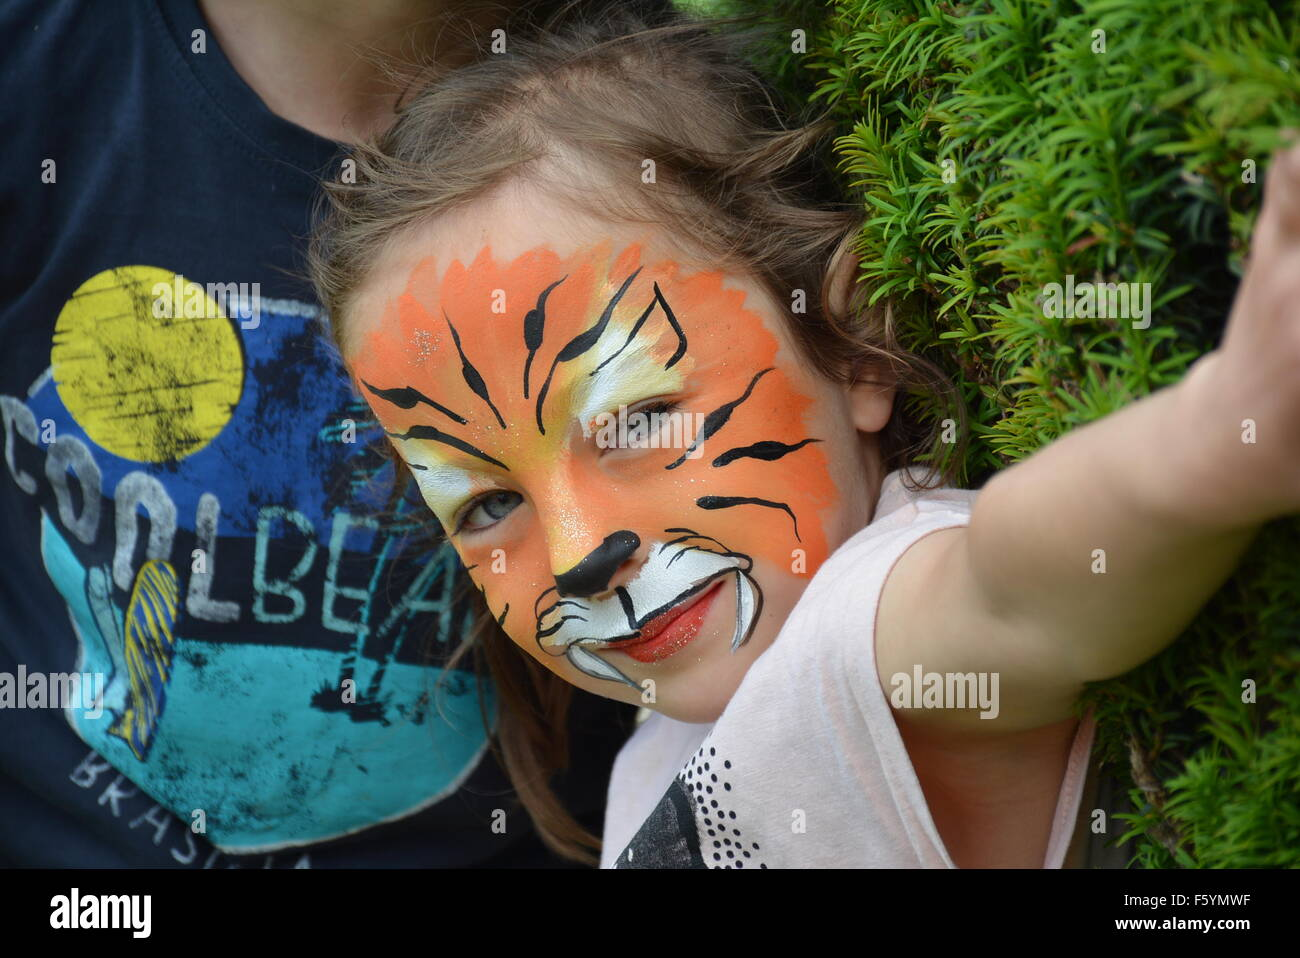 Playgrounds,kids, face painting, estates, day's out, play, kids care, schools, kids environments, children, community, Stock Photo